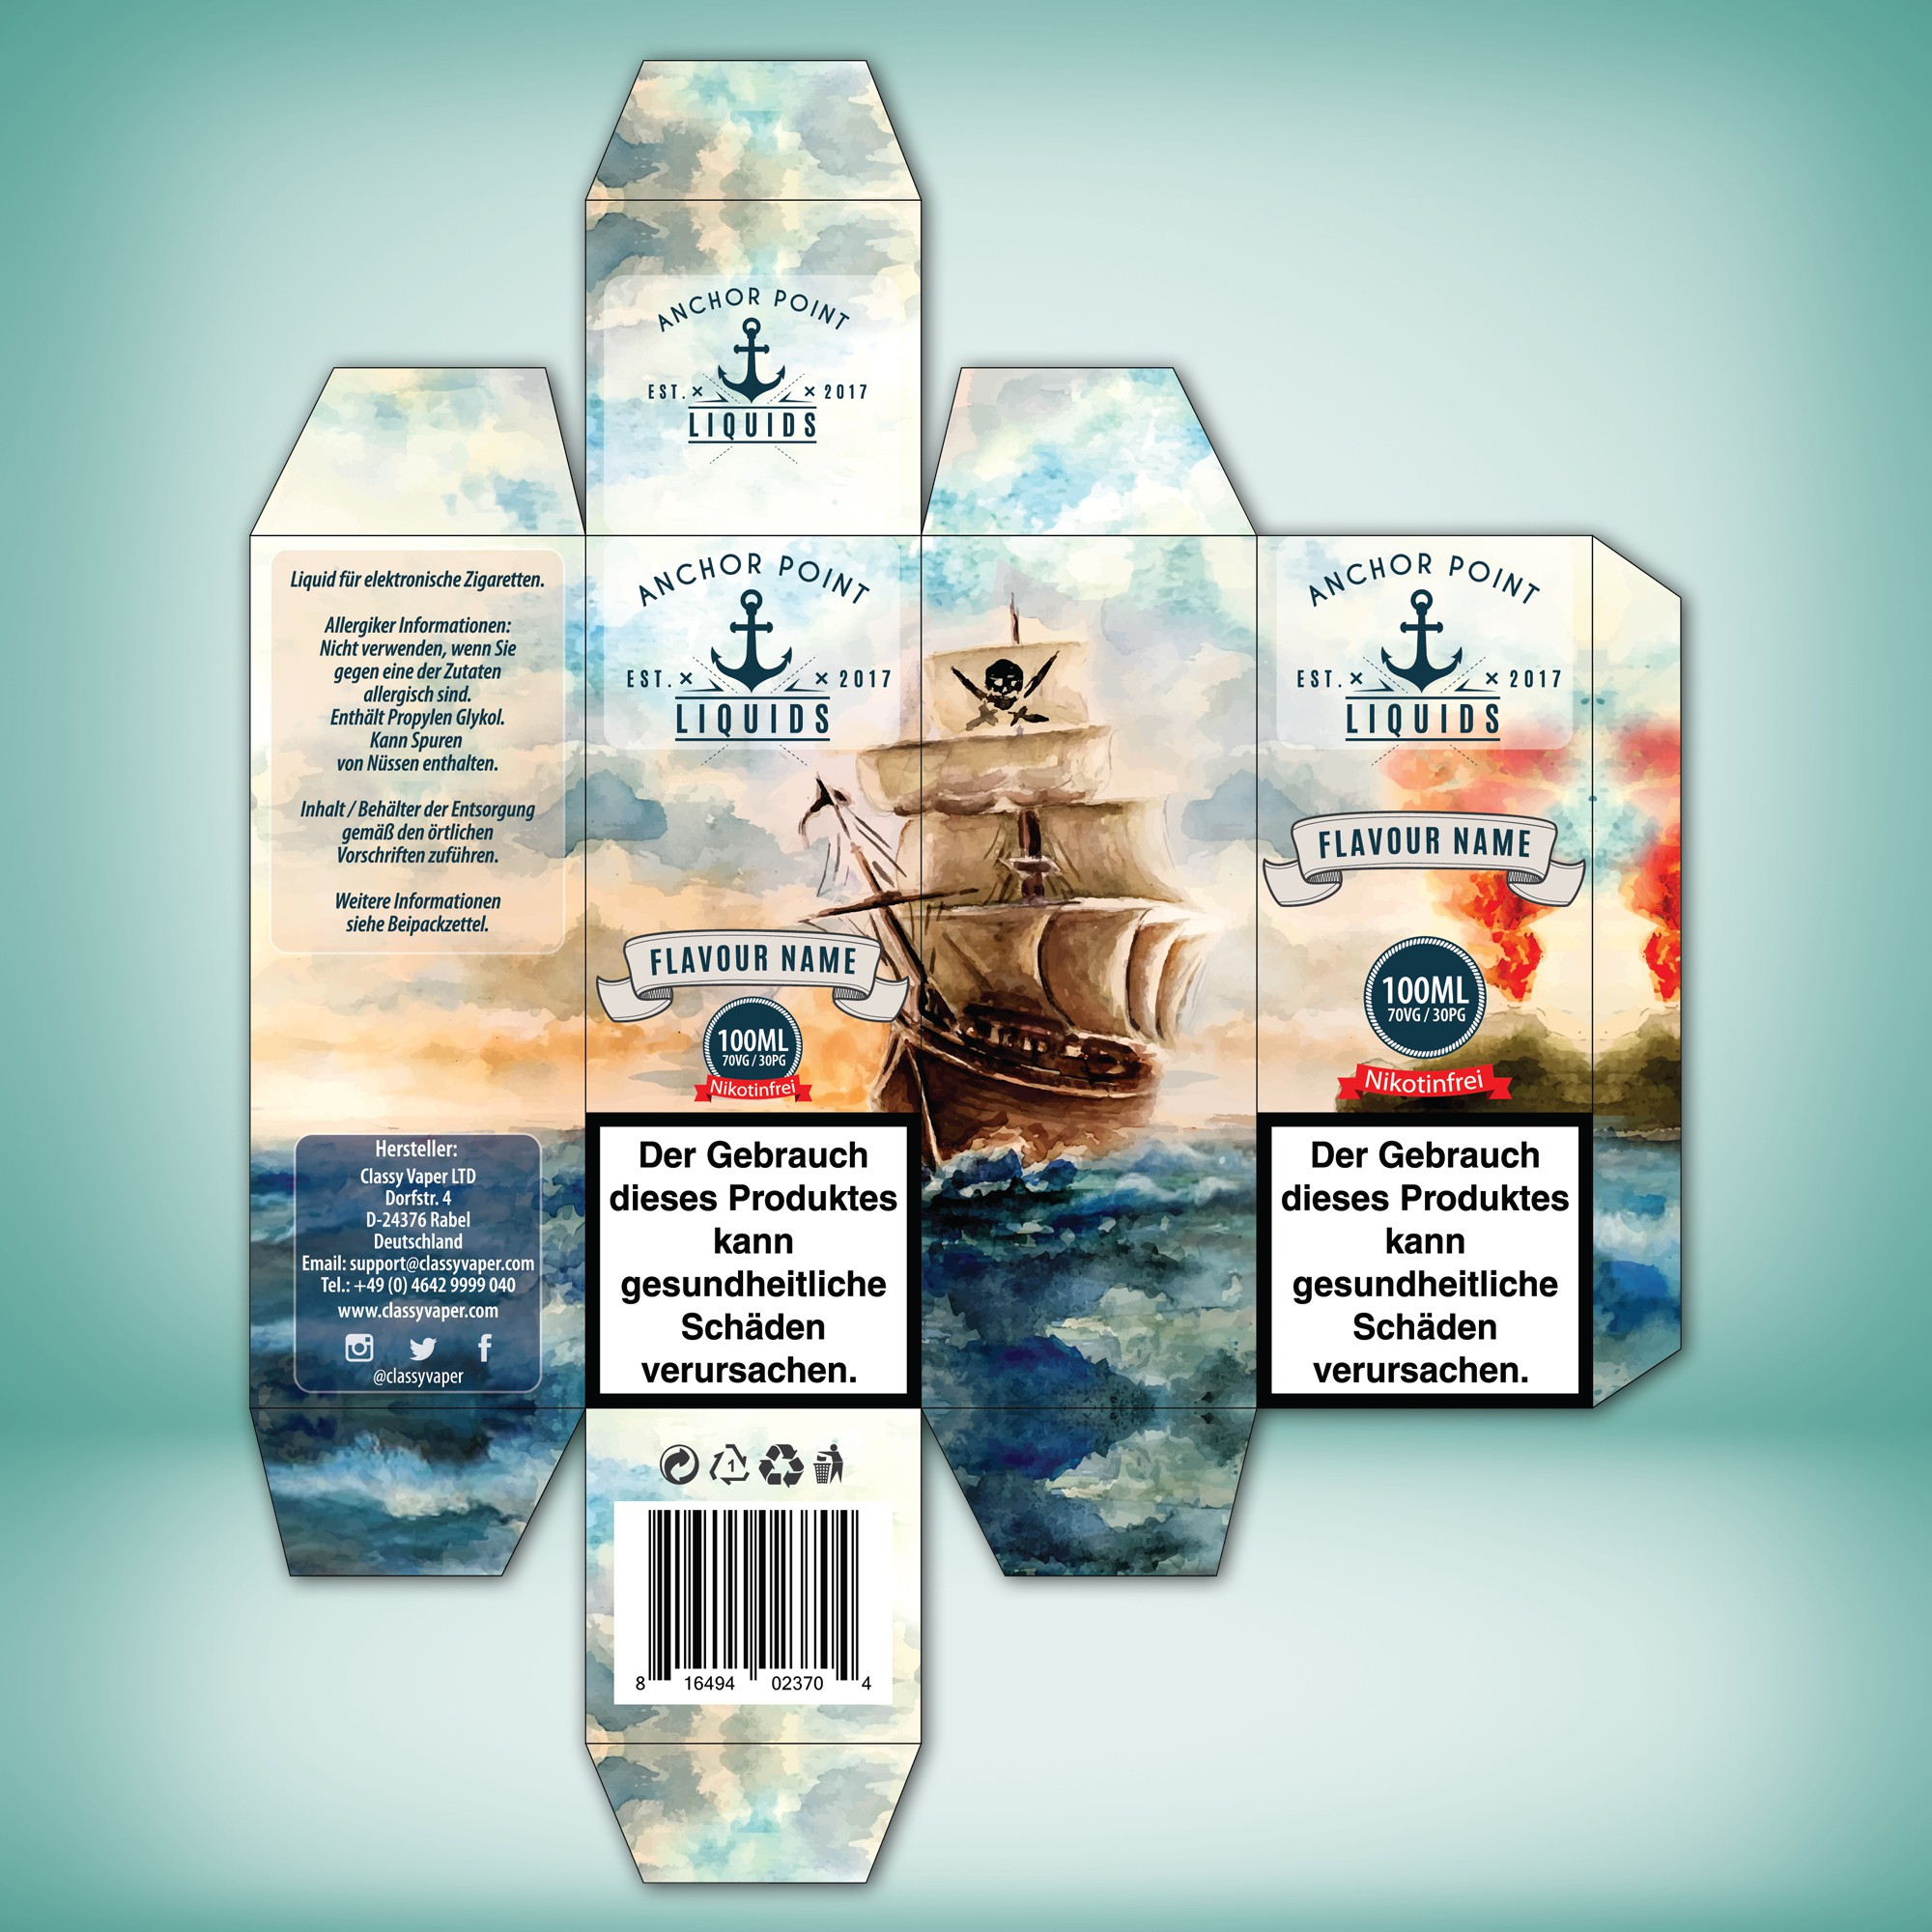 Anchor Point Liquids Verpackungsdesign.